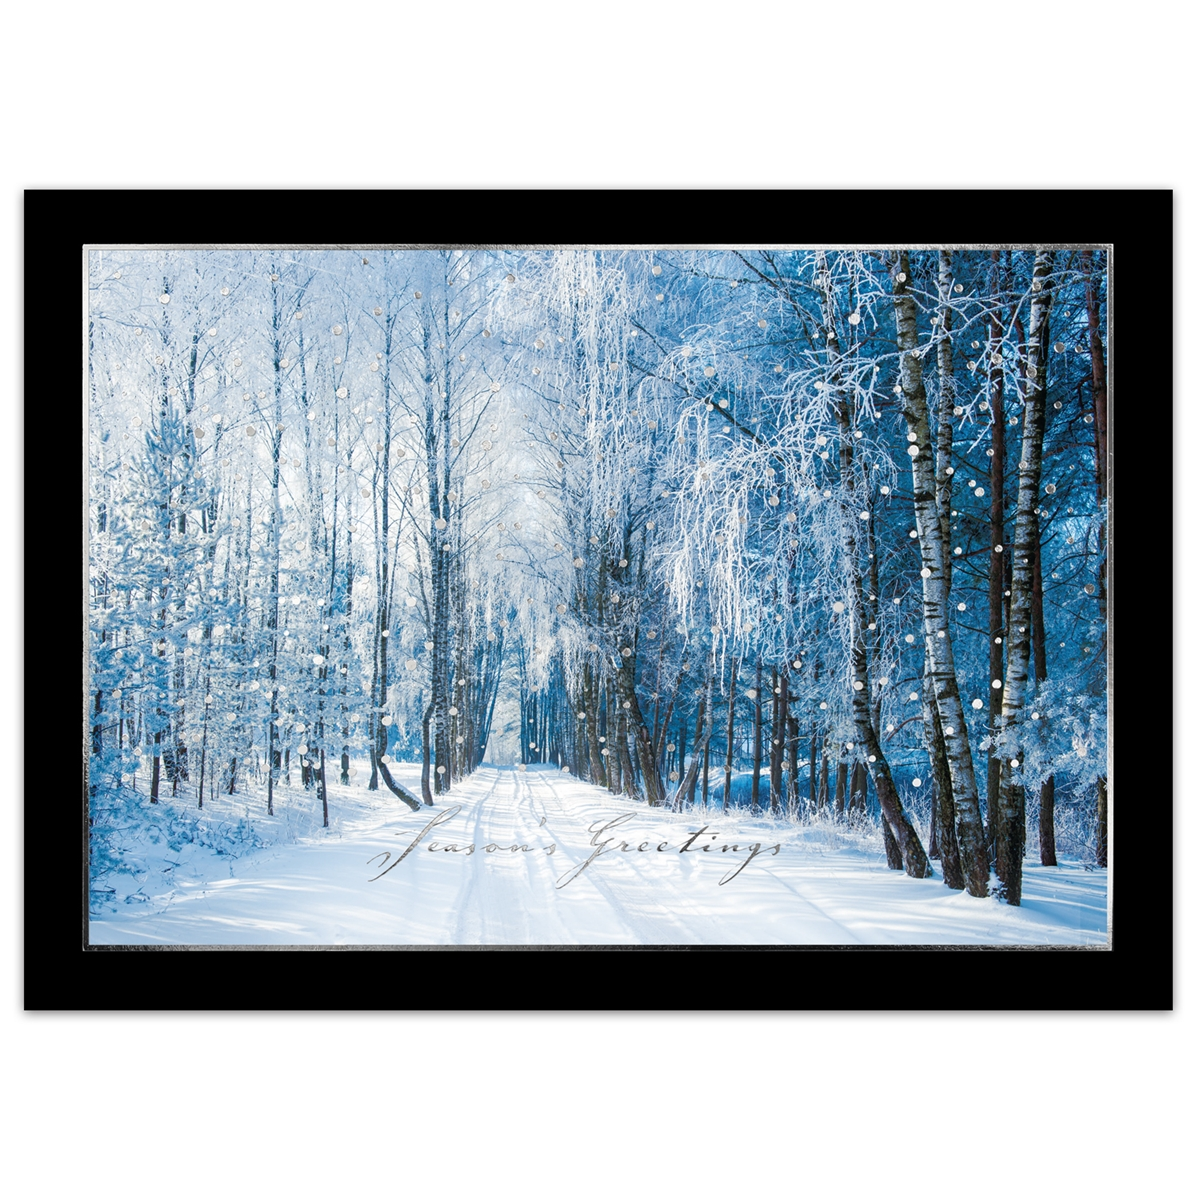 Snowy Tree Lined Road Card